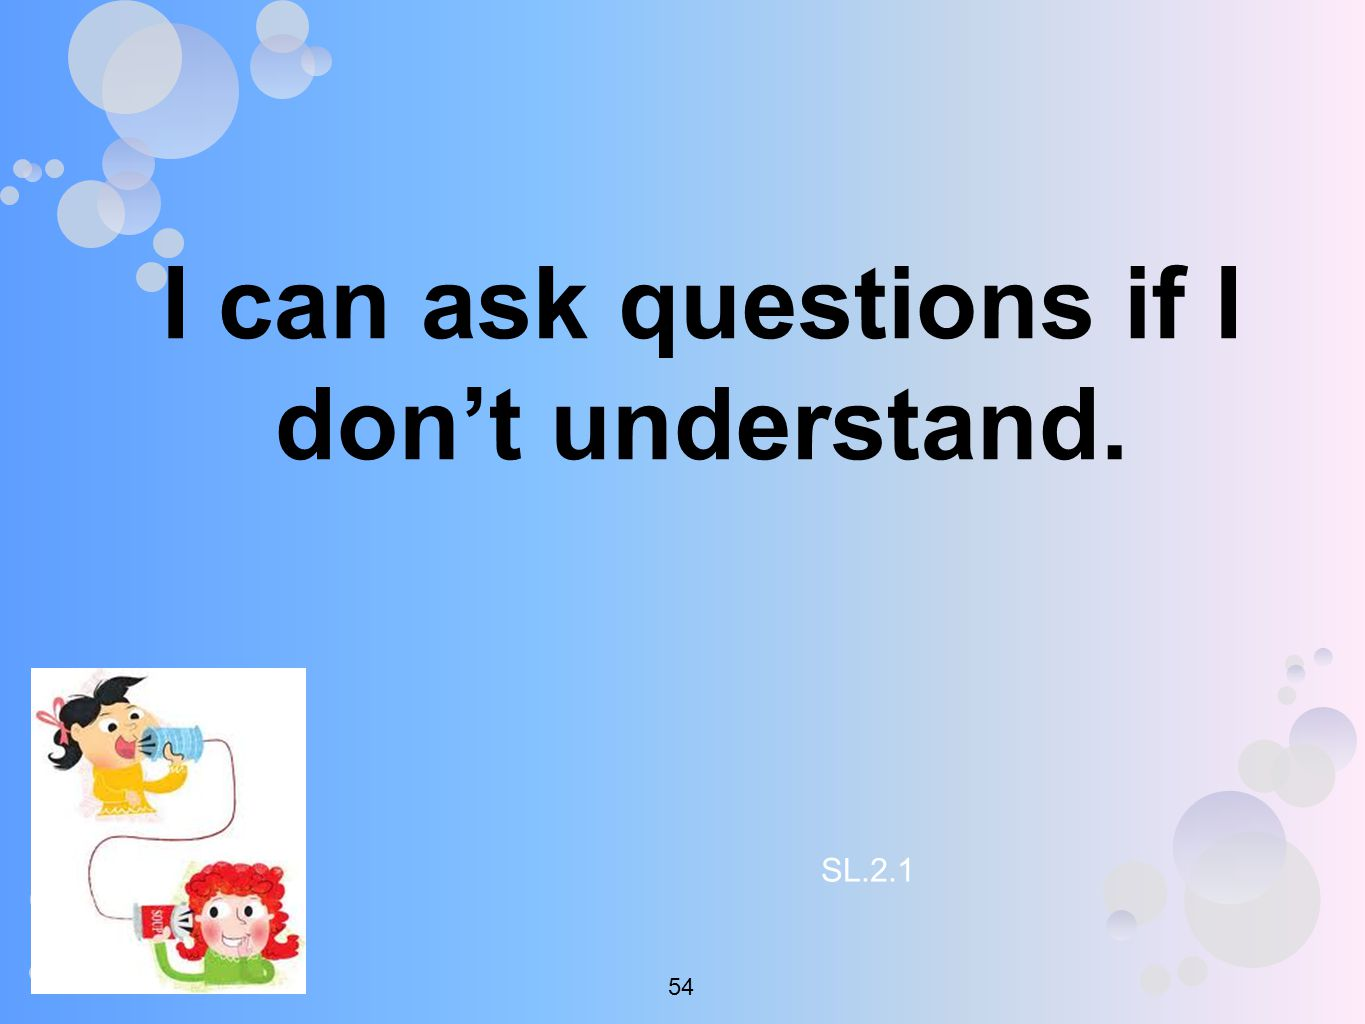 I can ask questions if I don't understand. SL